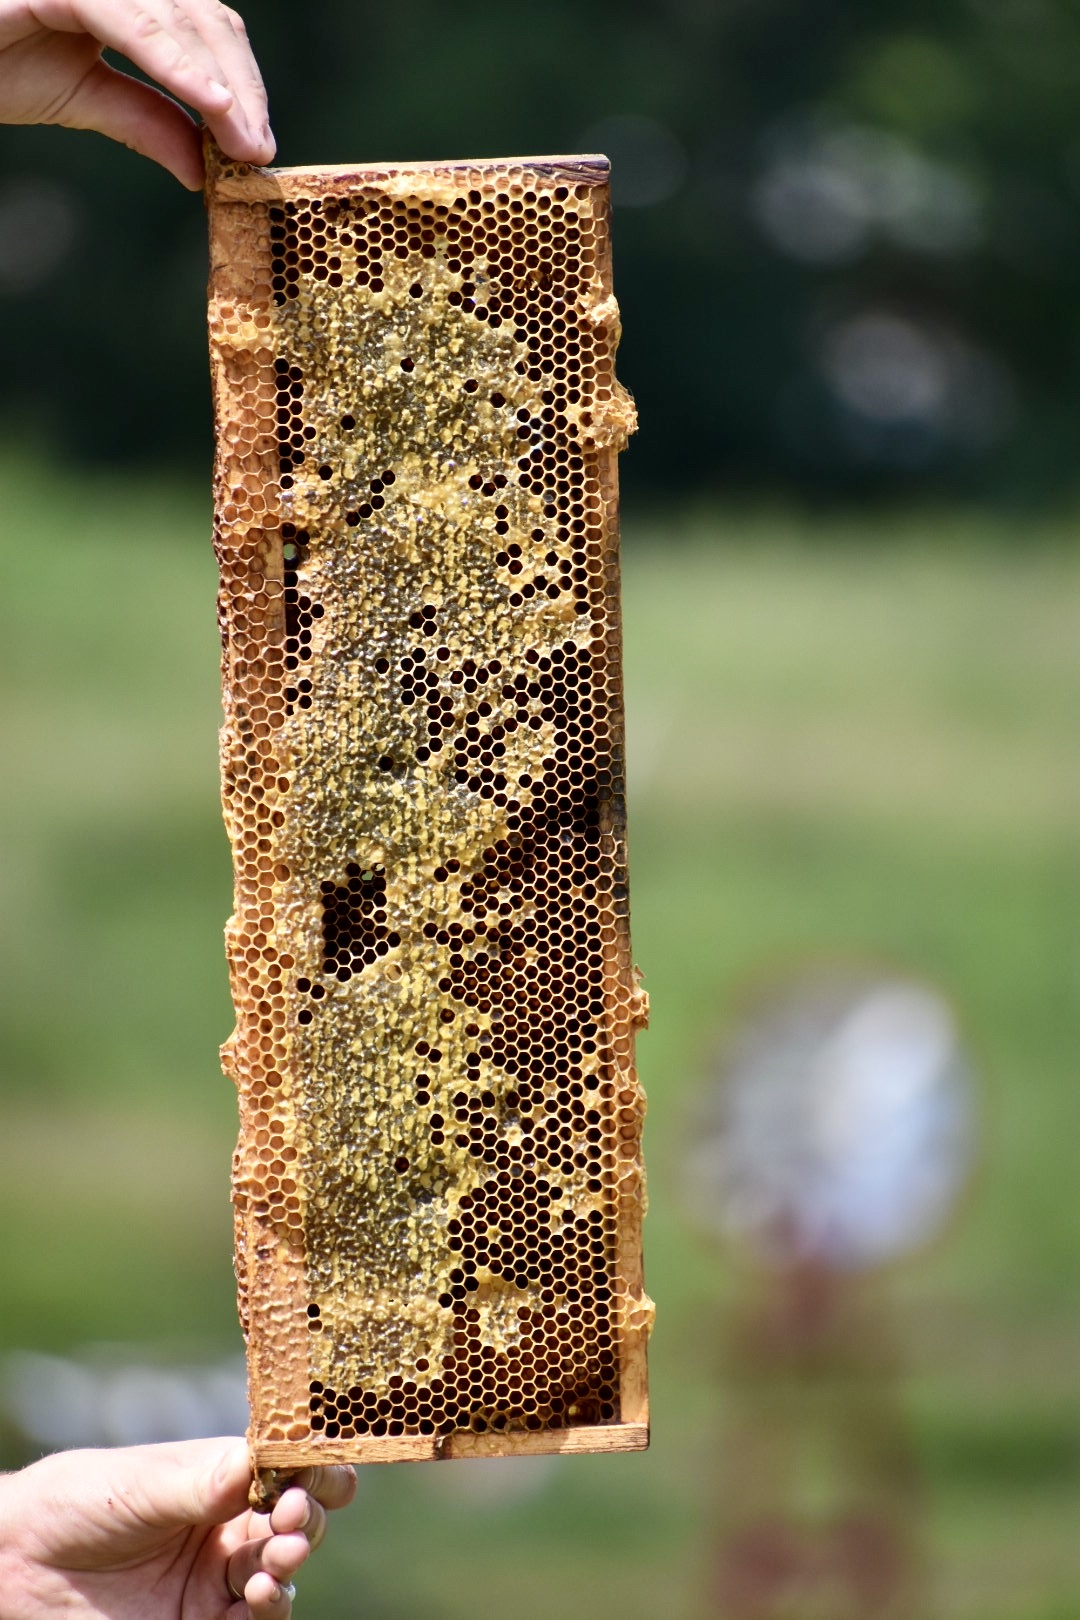 Frames Host A Hive